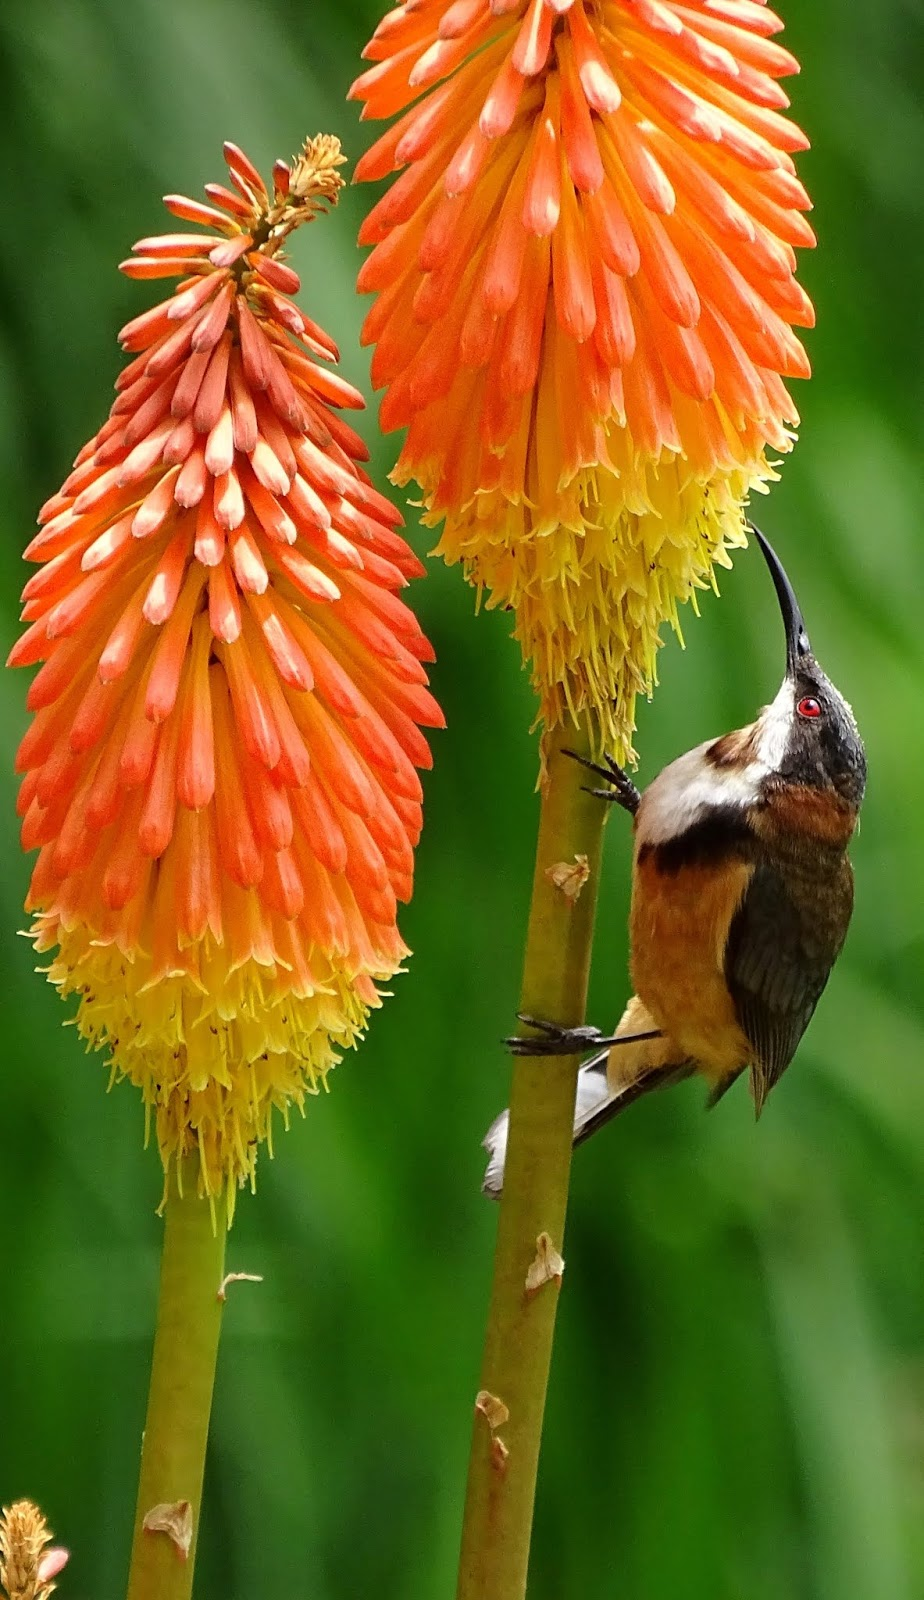 Bird drinking nectar.